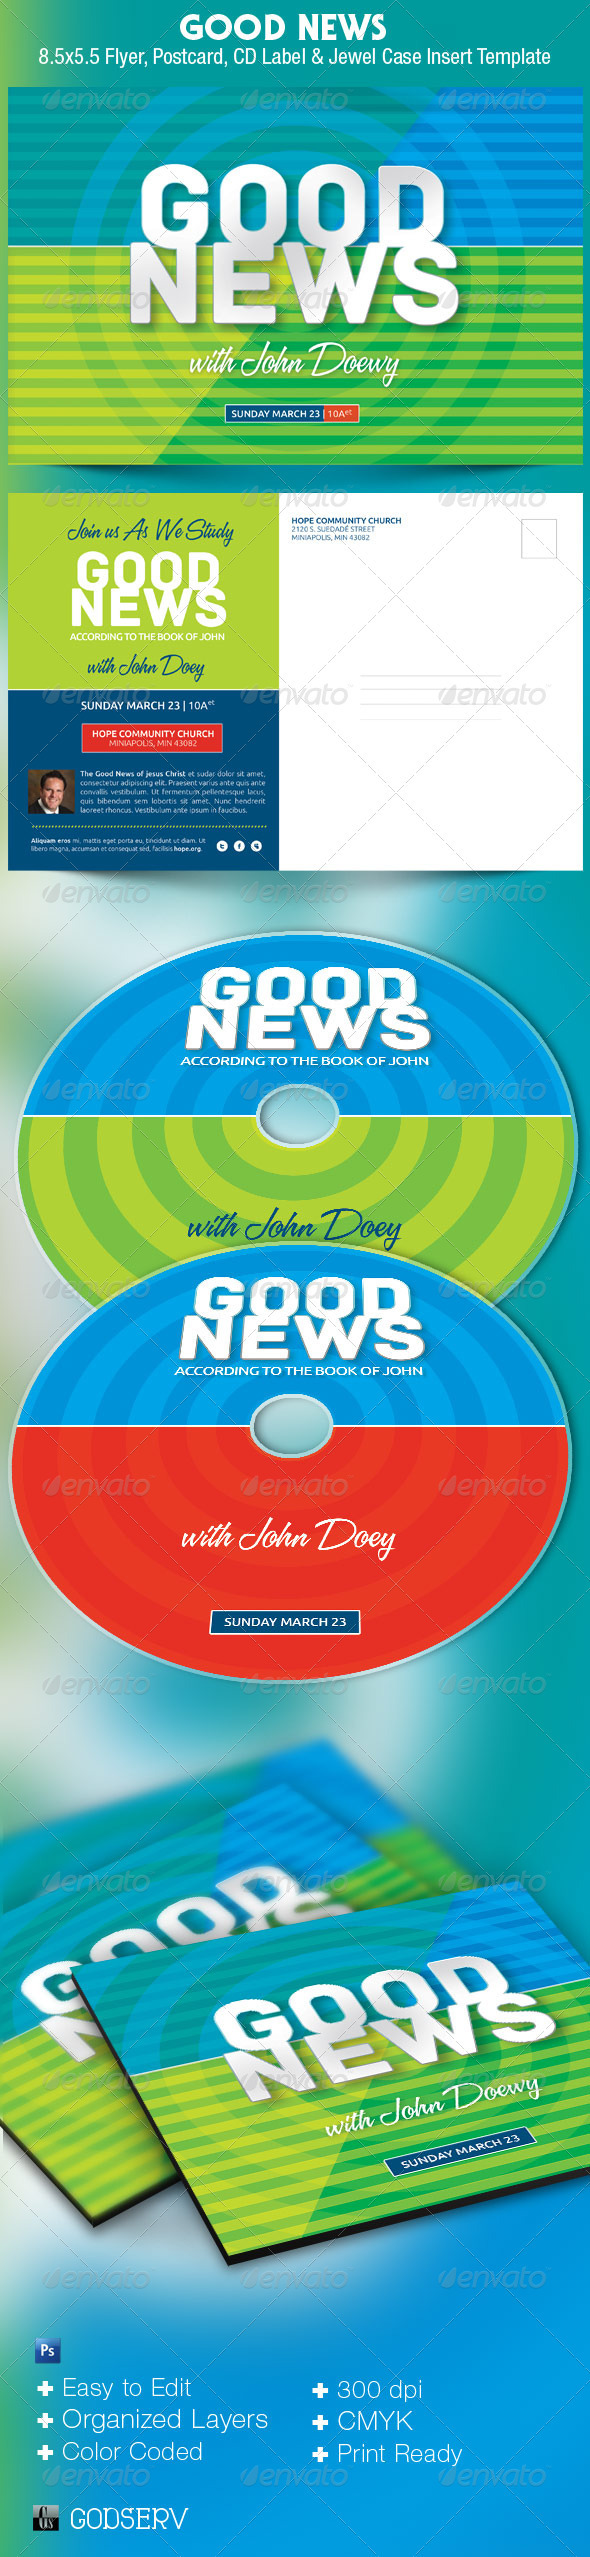 Good News Church Postcard and CD Template - Church Flyers